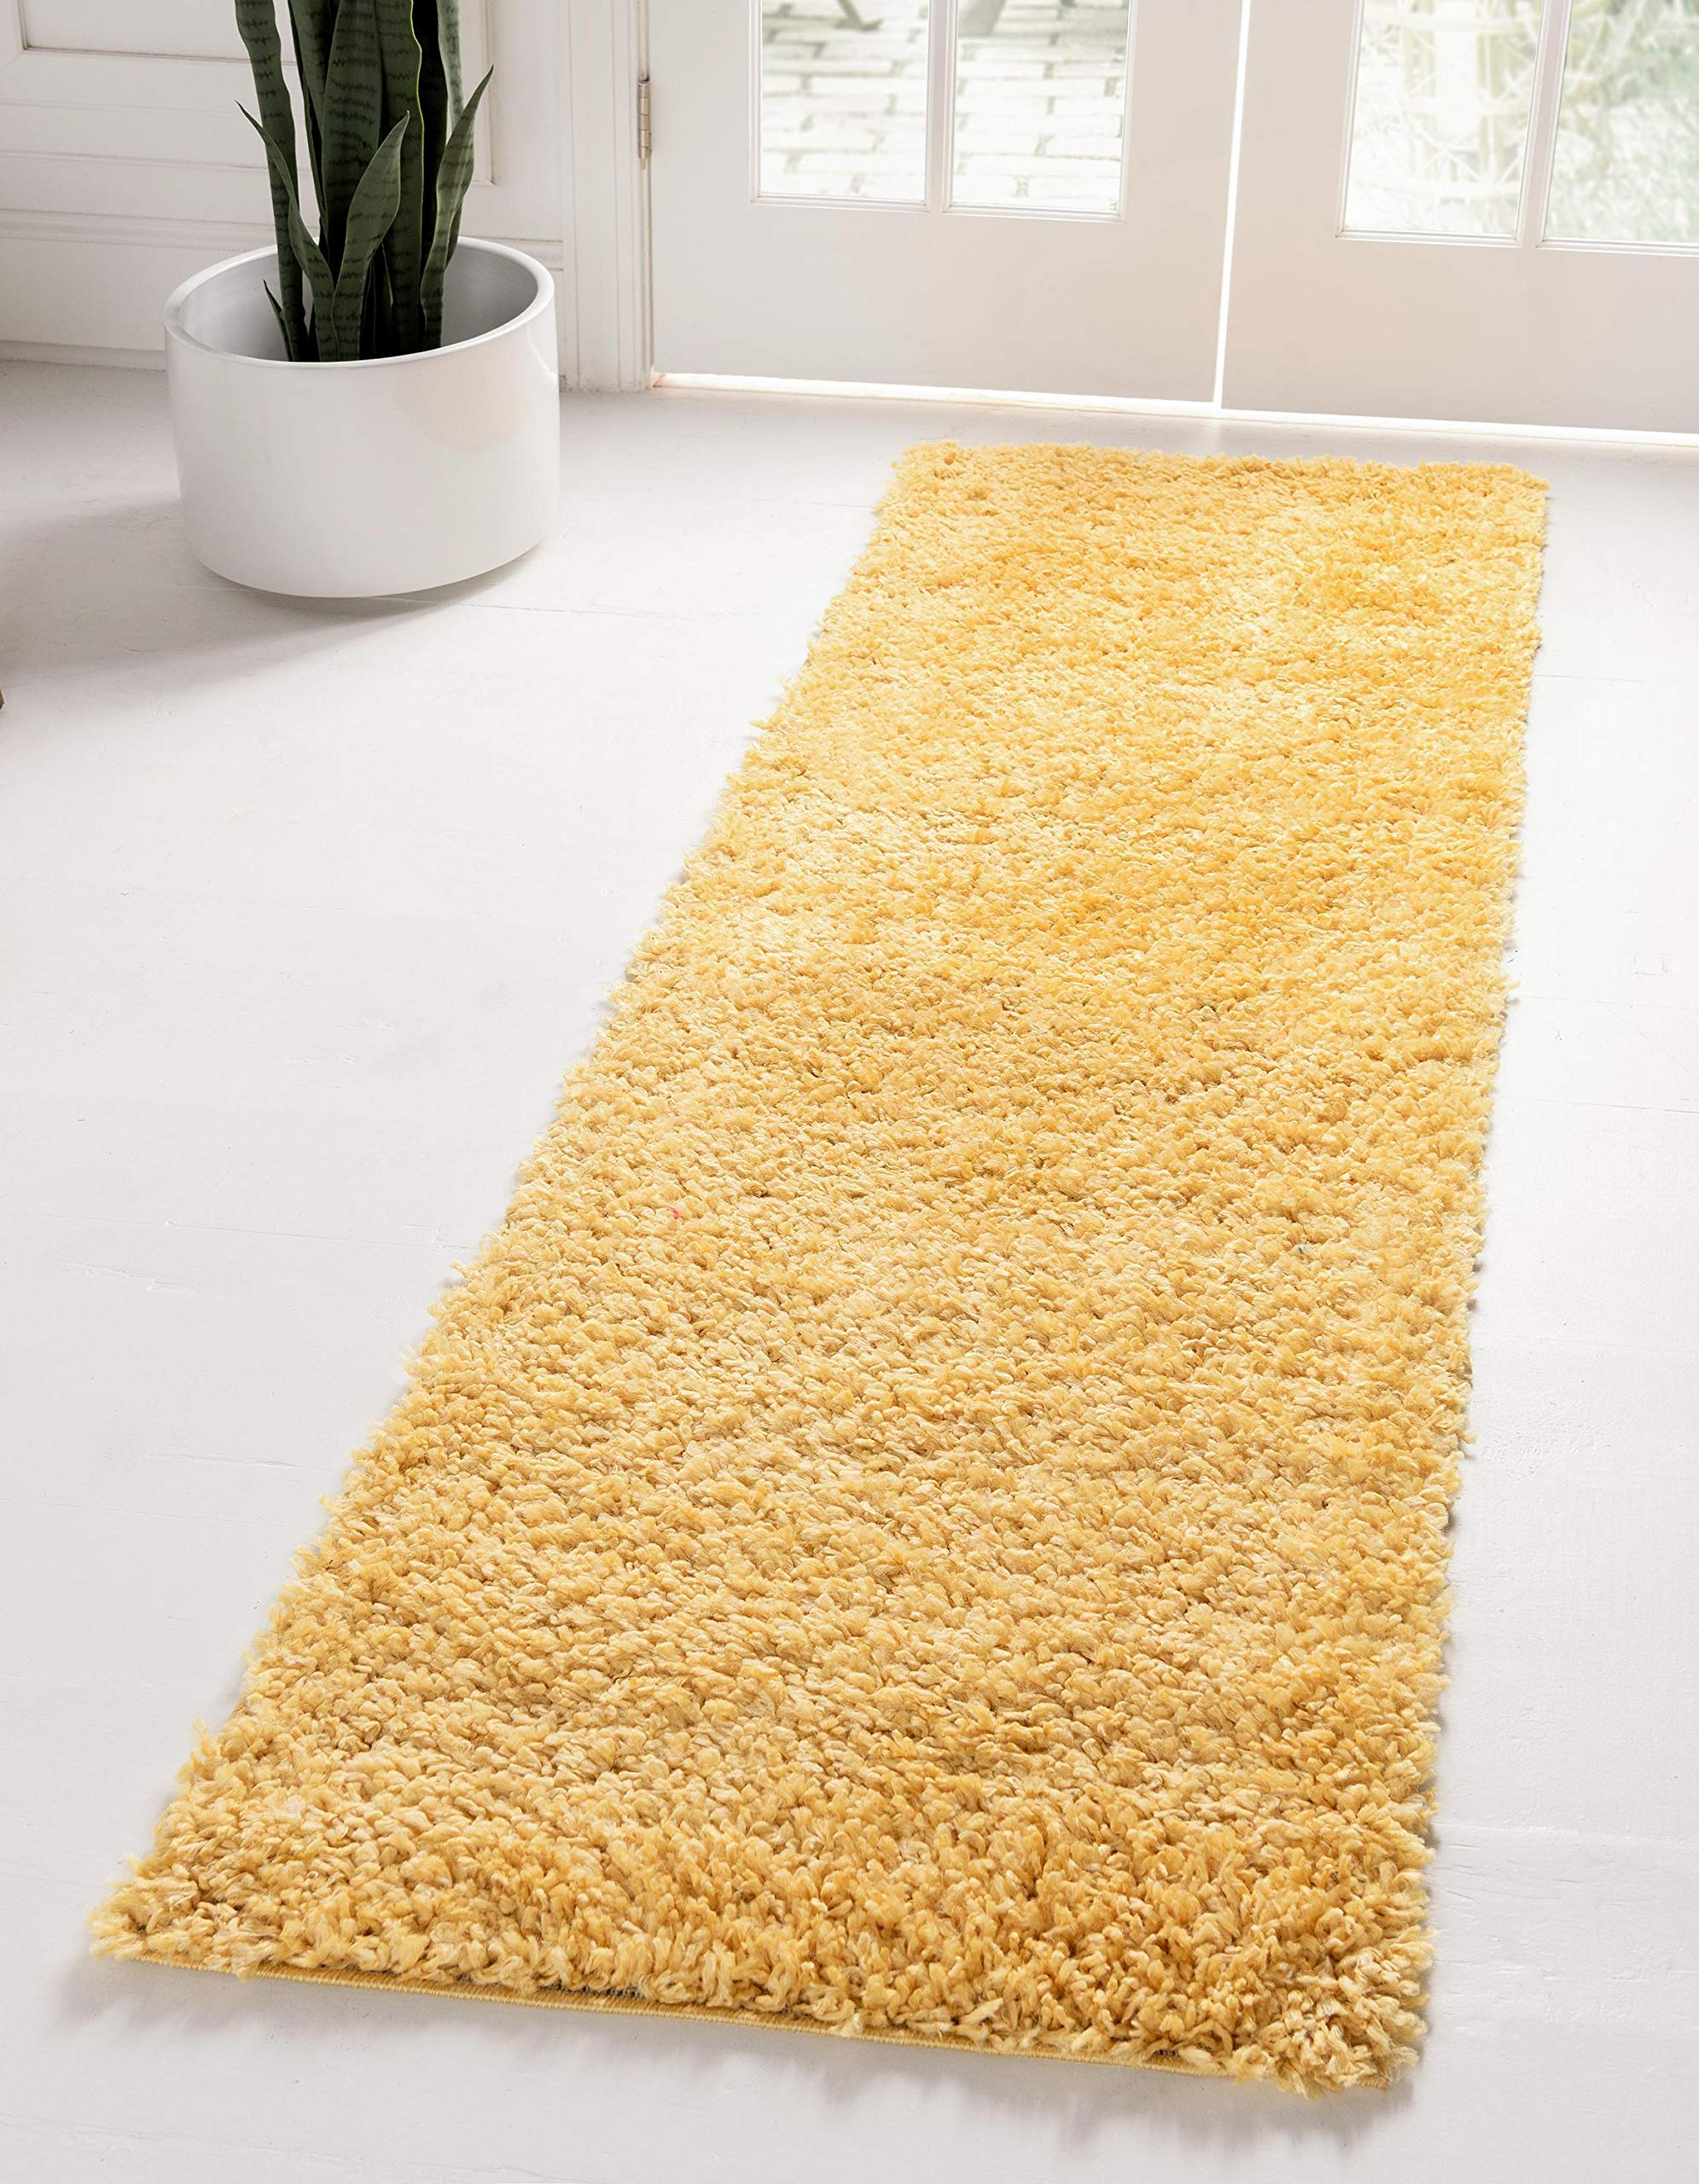 Unique Loom Davos Shag Collection Contemporary Soft Cozy Solid Shag Sunglow Runner Rug (2' 2 x 6' 7)